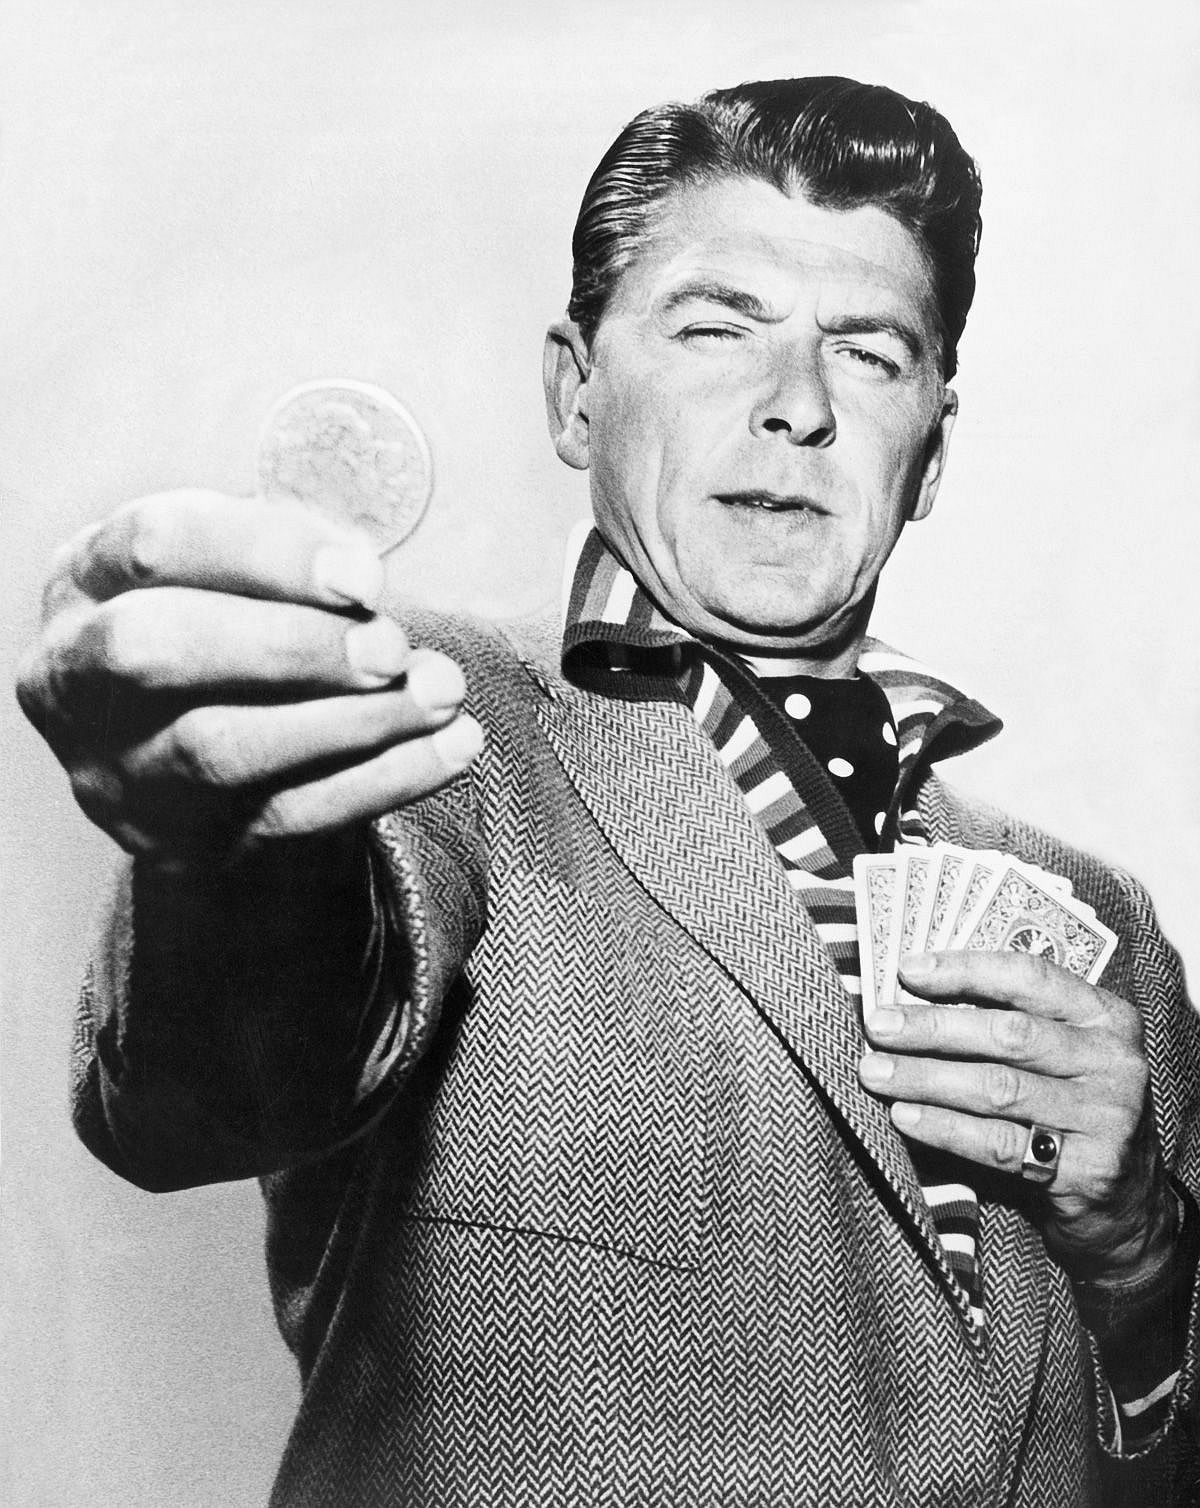 1958  Reagan performs in the General Electric Theater CBS teleplay The Lord's Dollar.  Image: Underwood Archives/Getty Images